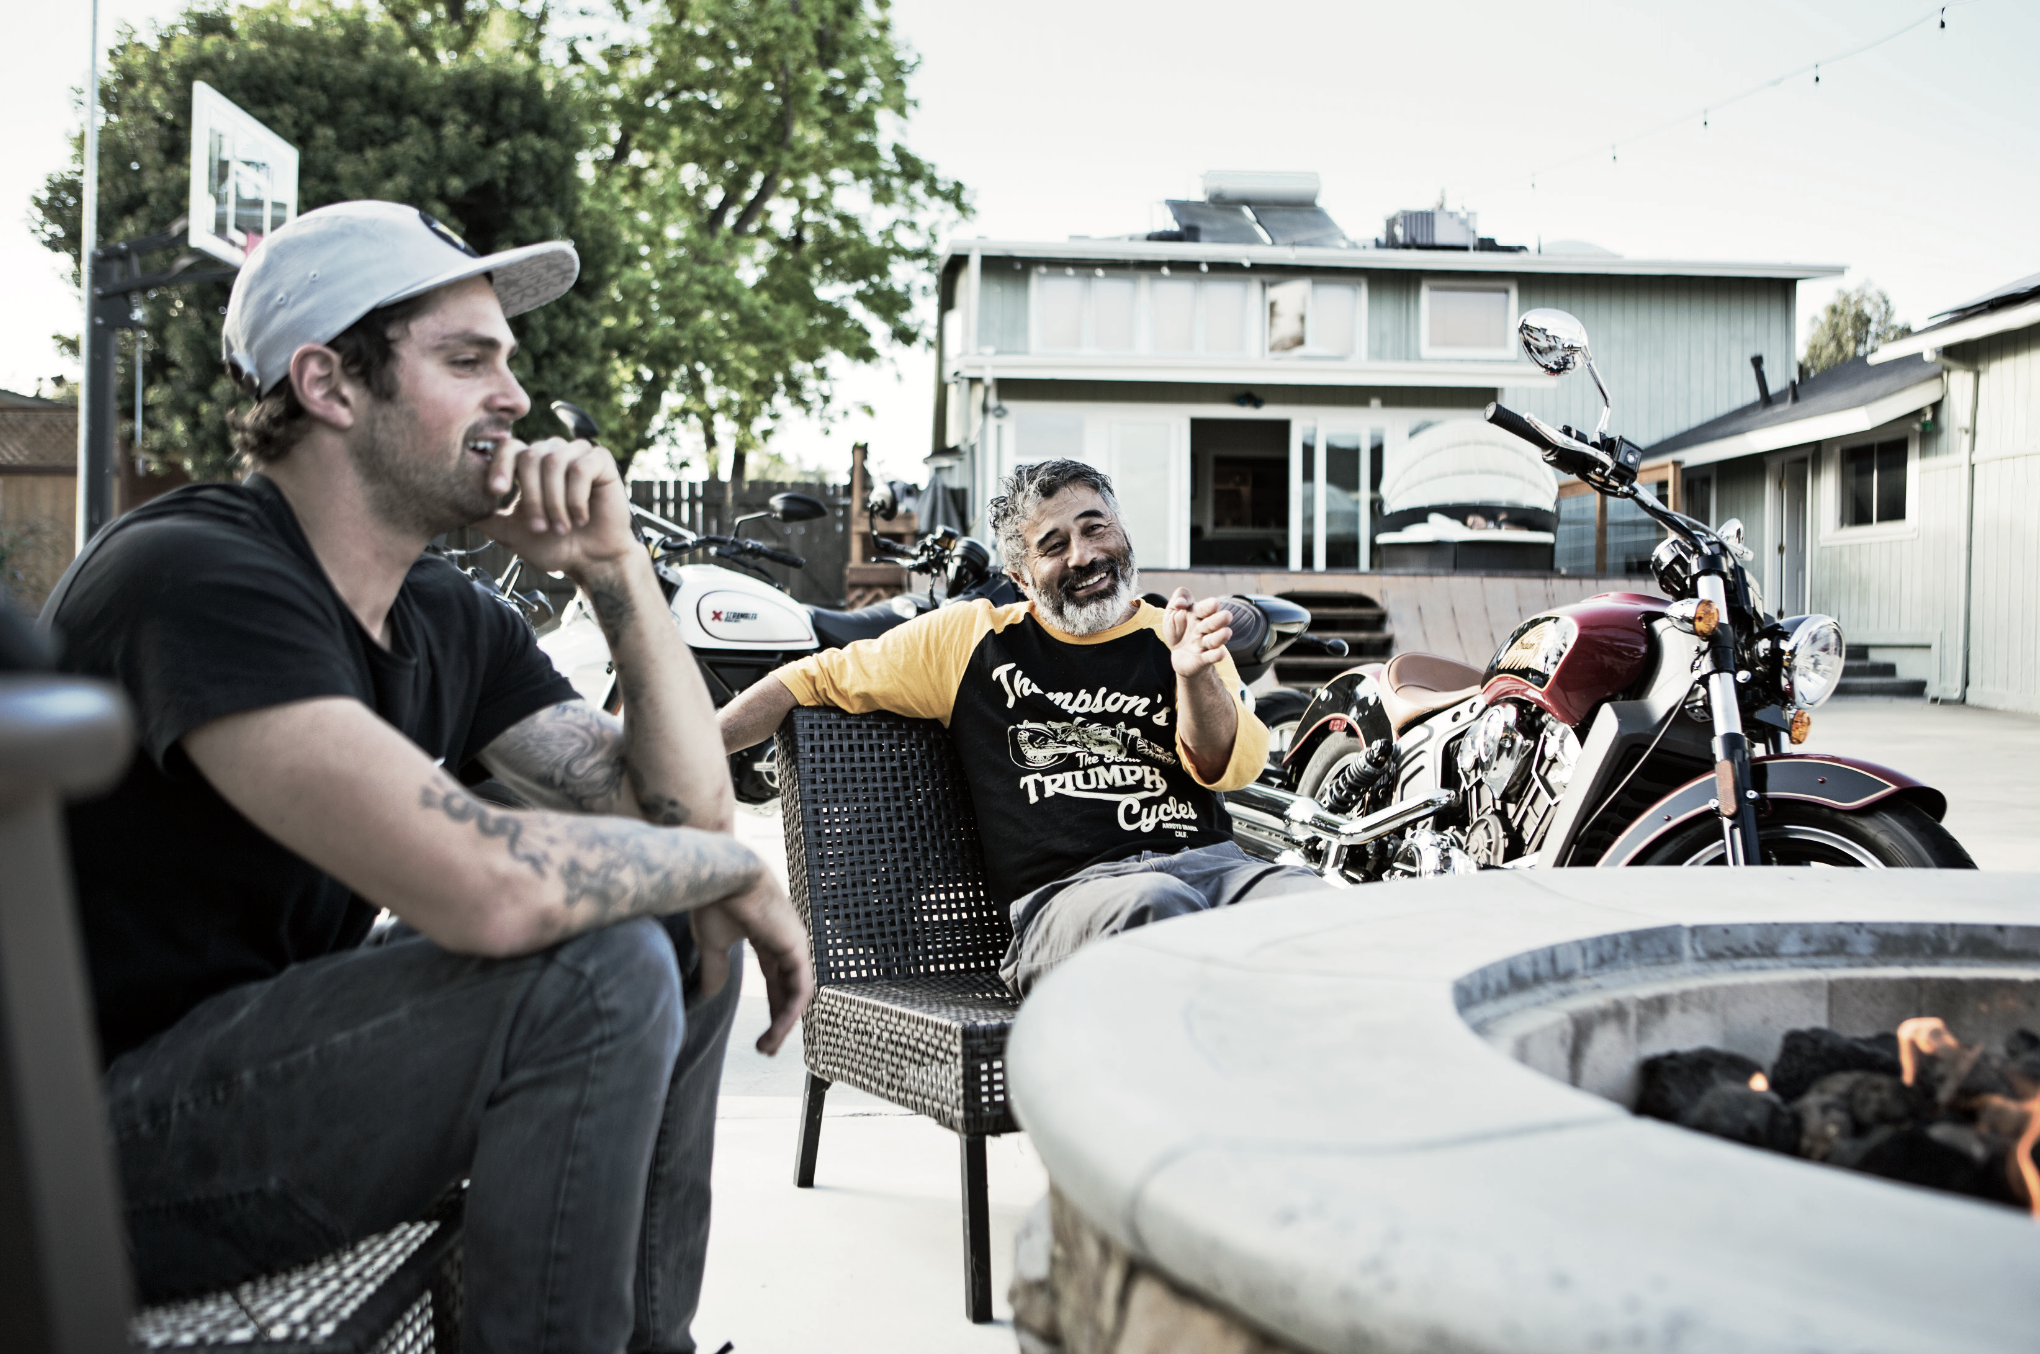 c66c318551 Steve Caballero and Elliot Sloan on Shared Passion for Skating ...